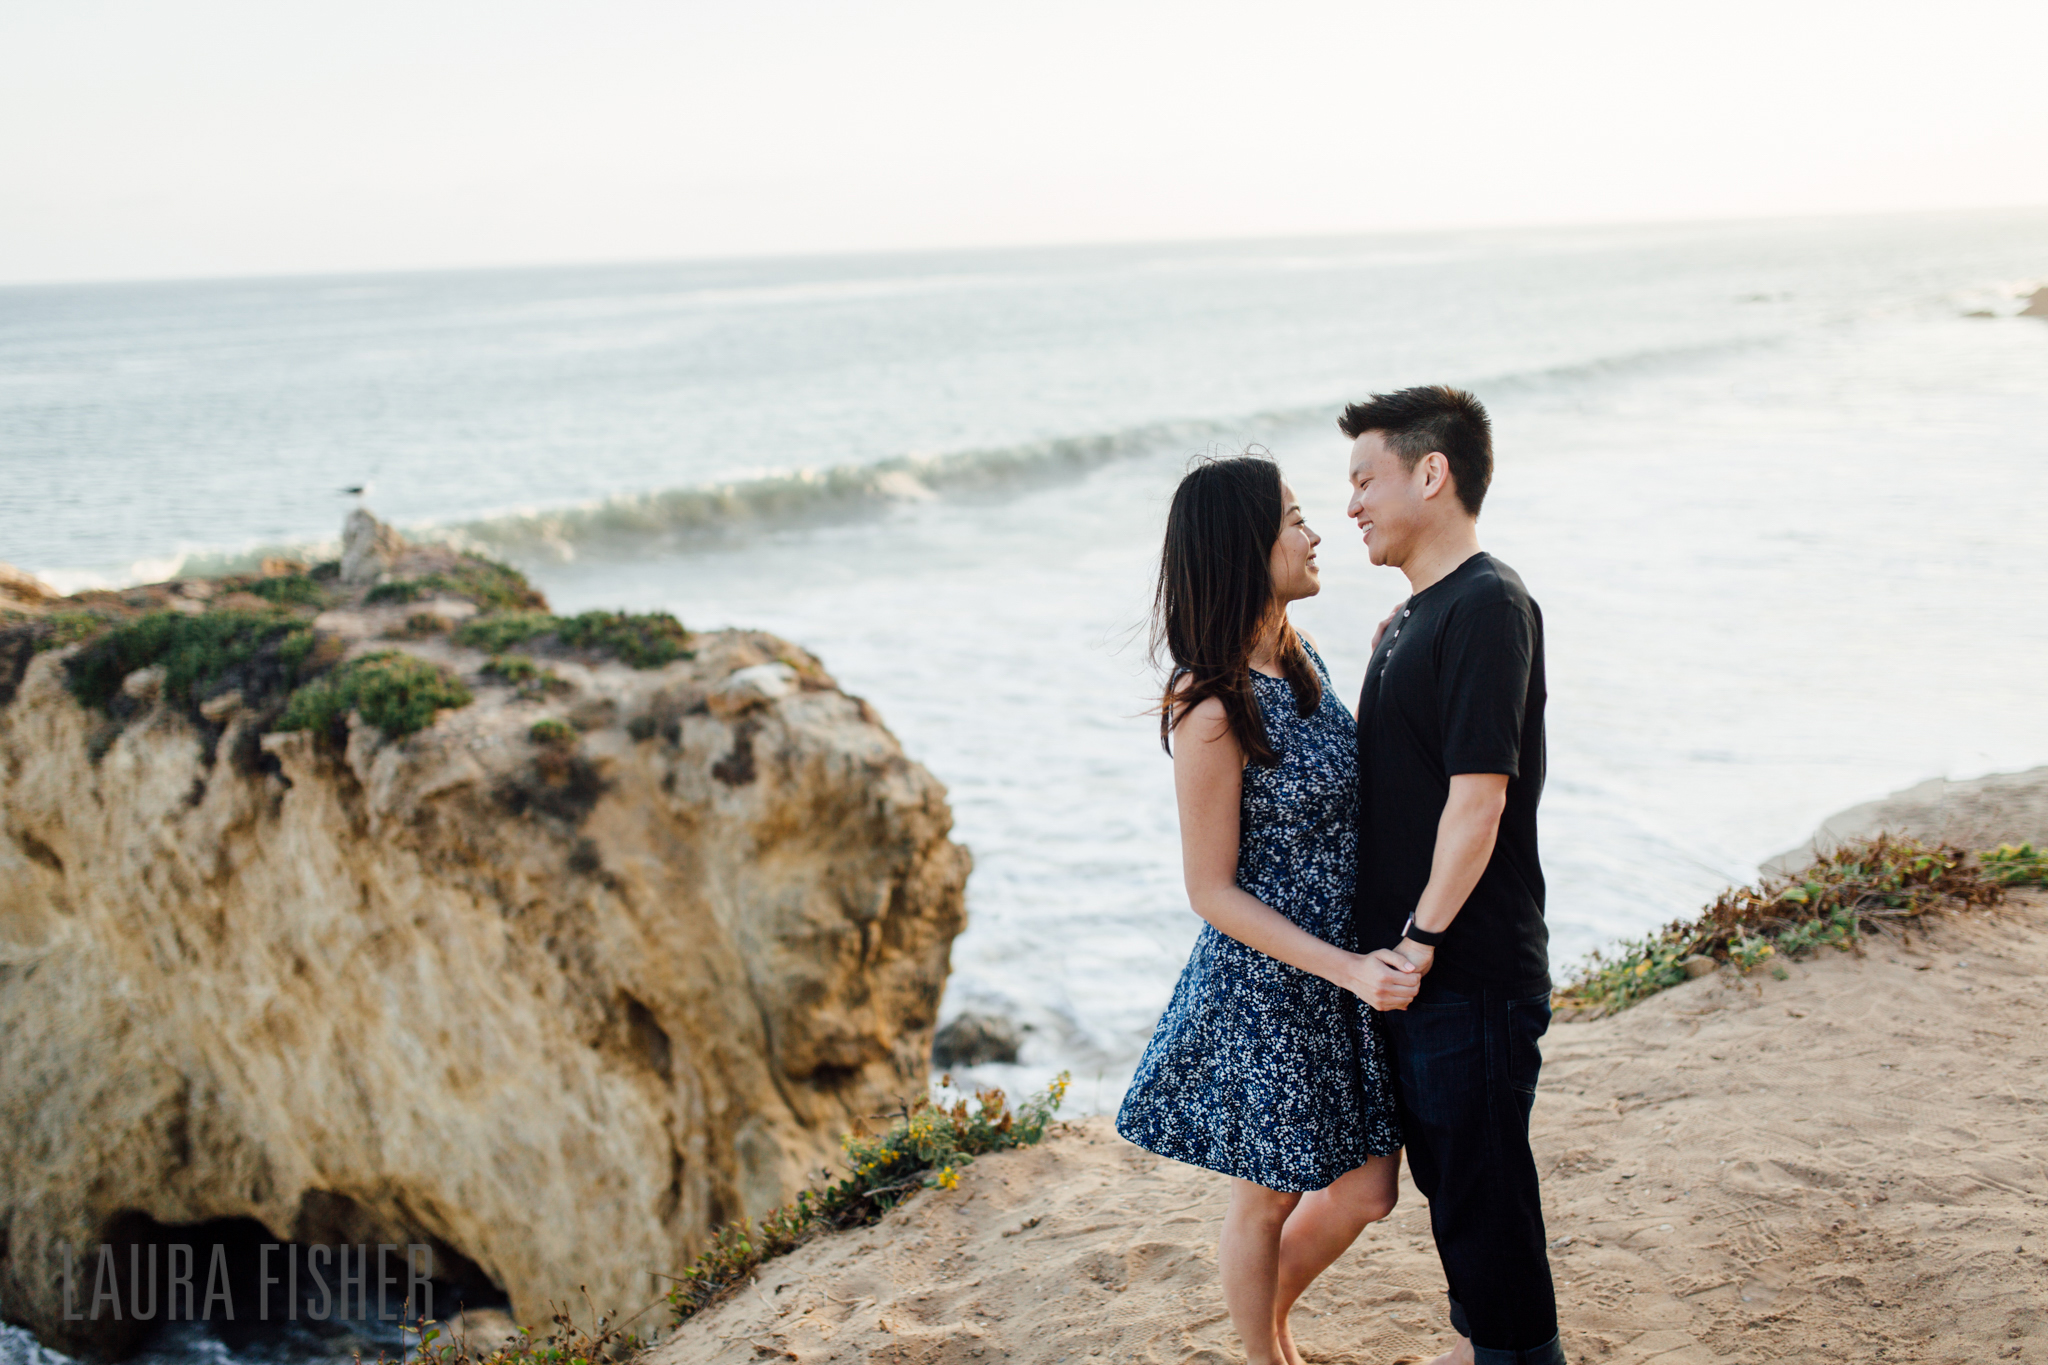 malibu-california-wedding-el-matador-beach-laura-fisher-photography-0065.jpg